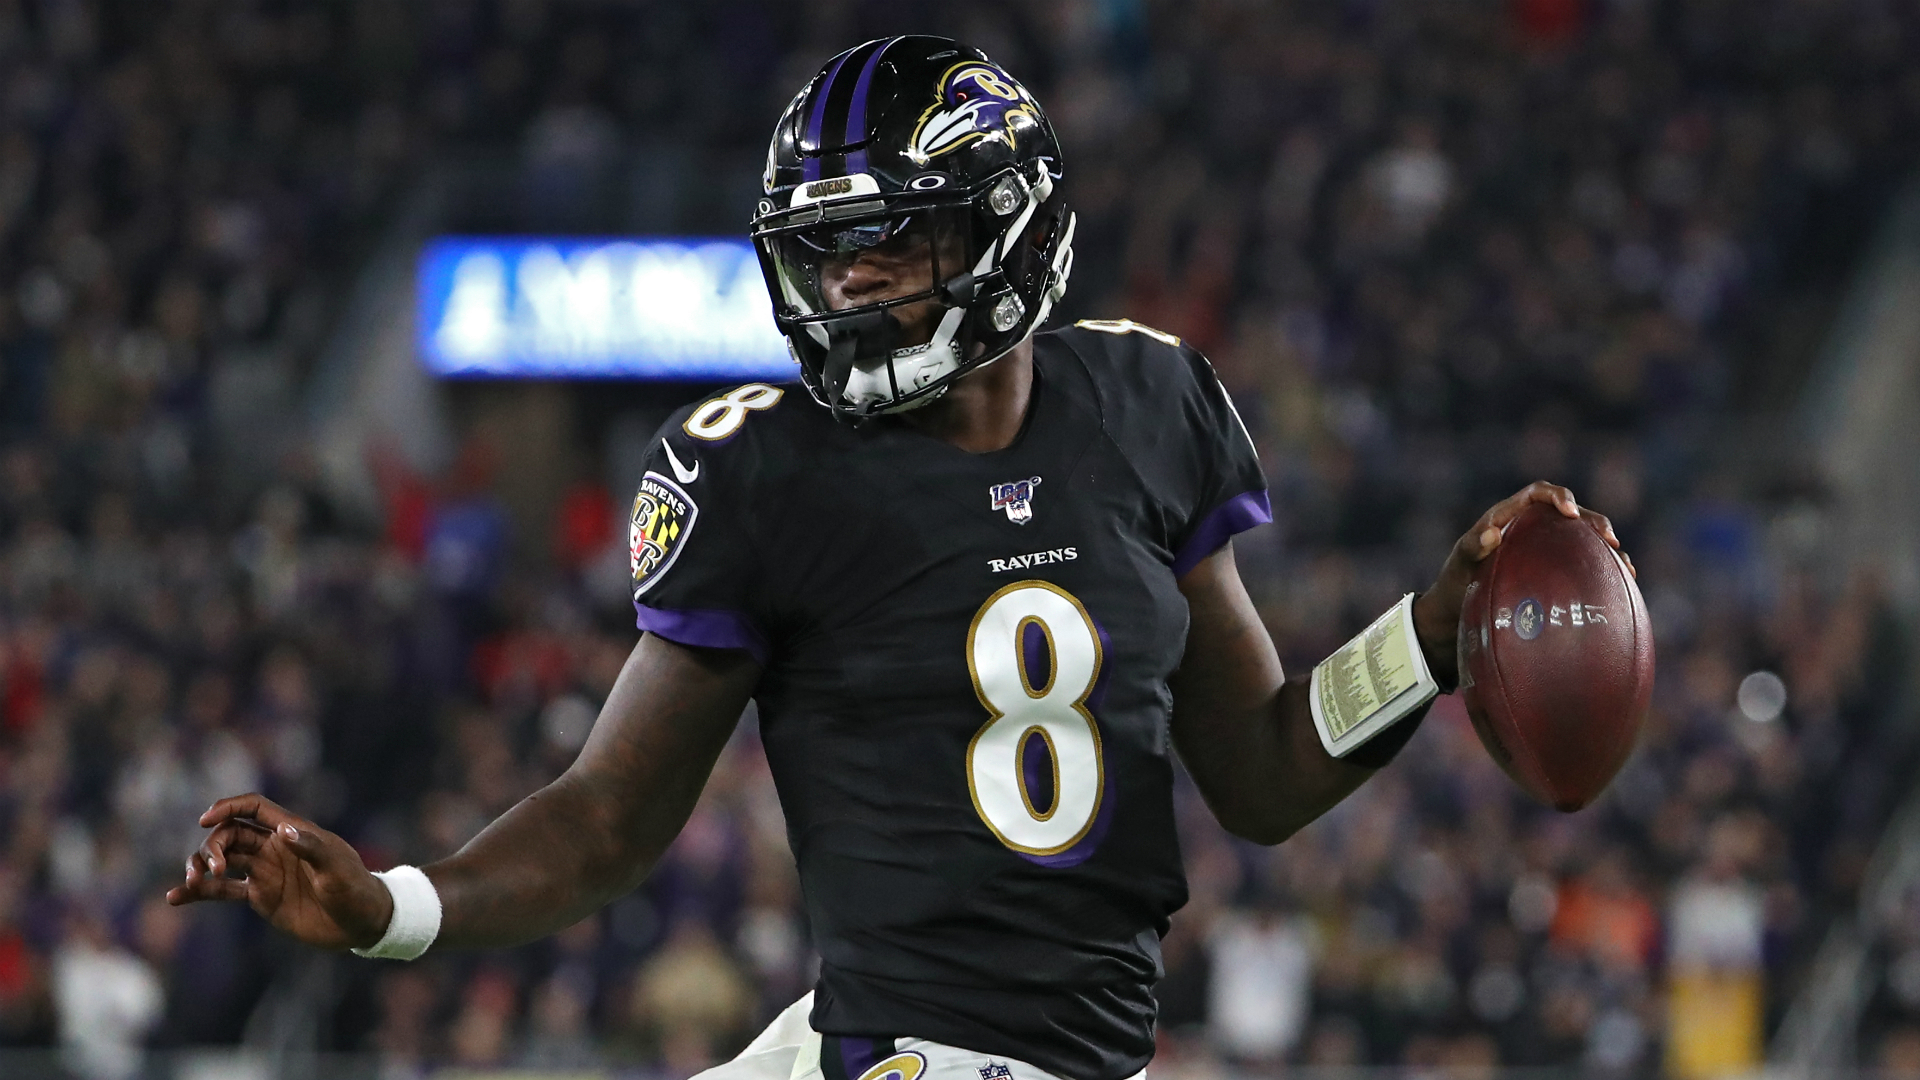 Three takeaways from Ravens' win over Patriots